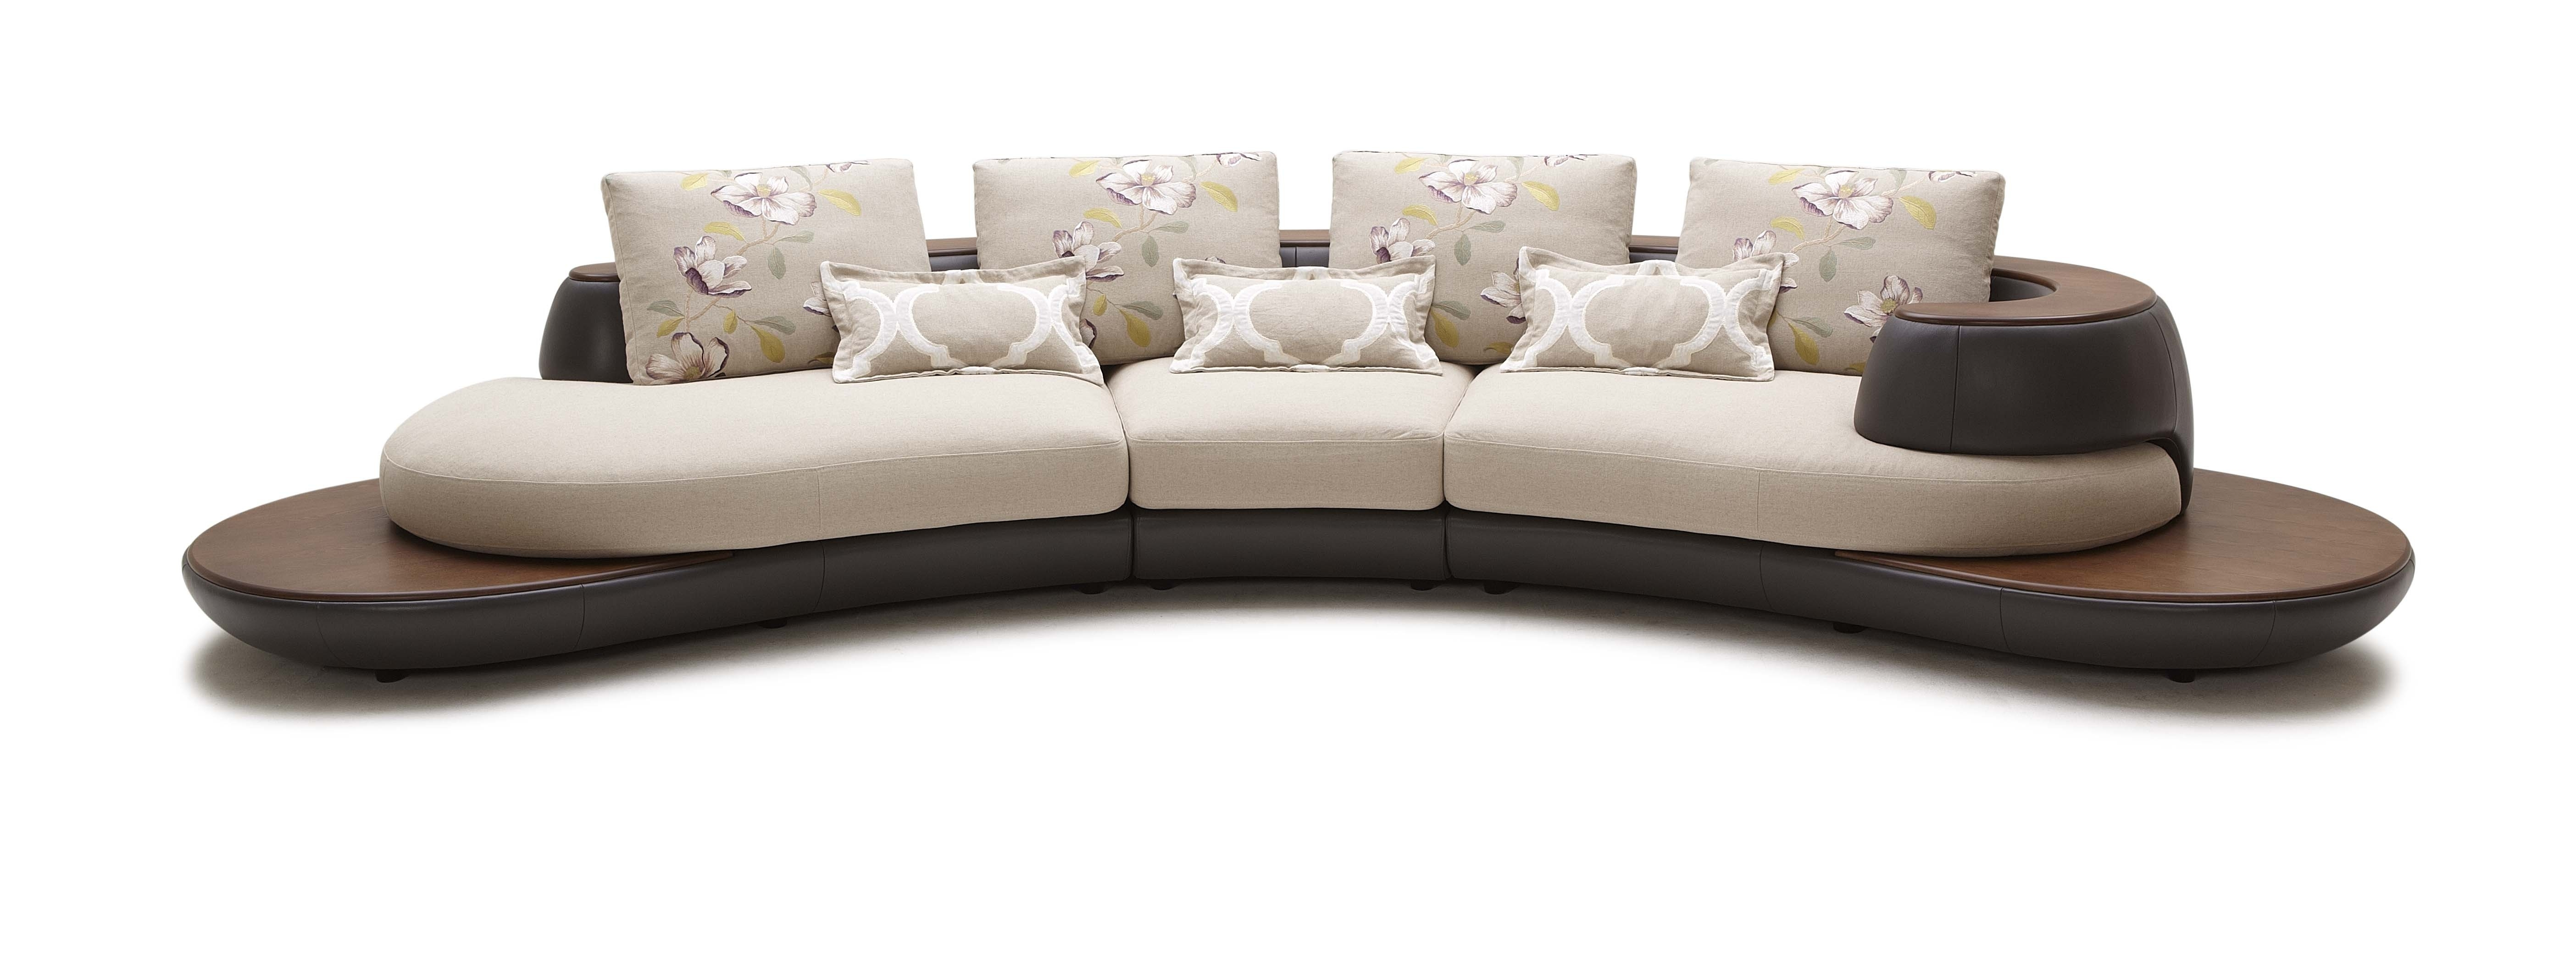 Furniture : 5060 Recliner Sectional Sofa Costco $699 Corner Couch For Joining Hardware Sectional Sofas (Image 2 of 10)